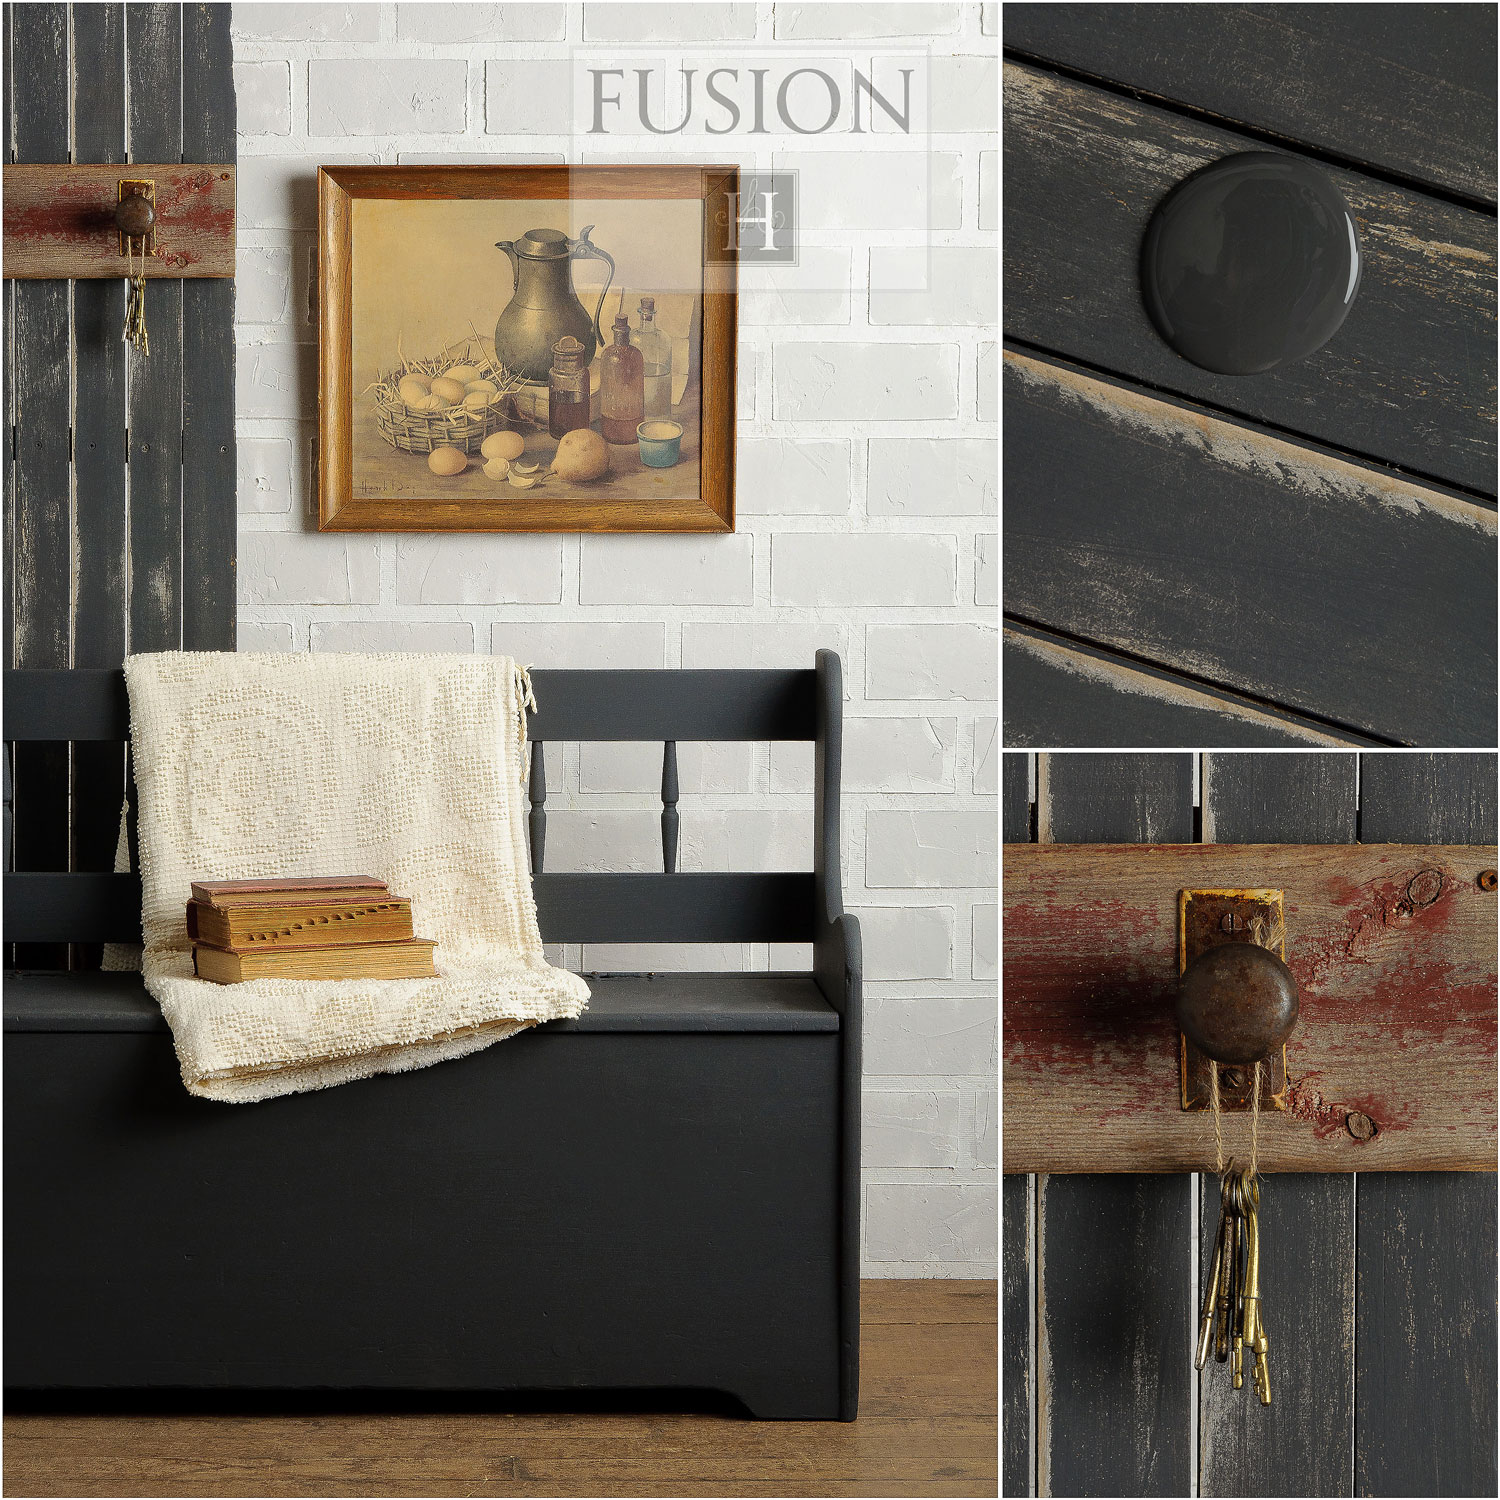 Fusion paint in ash - via My Painted Door (.com)